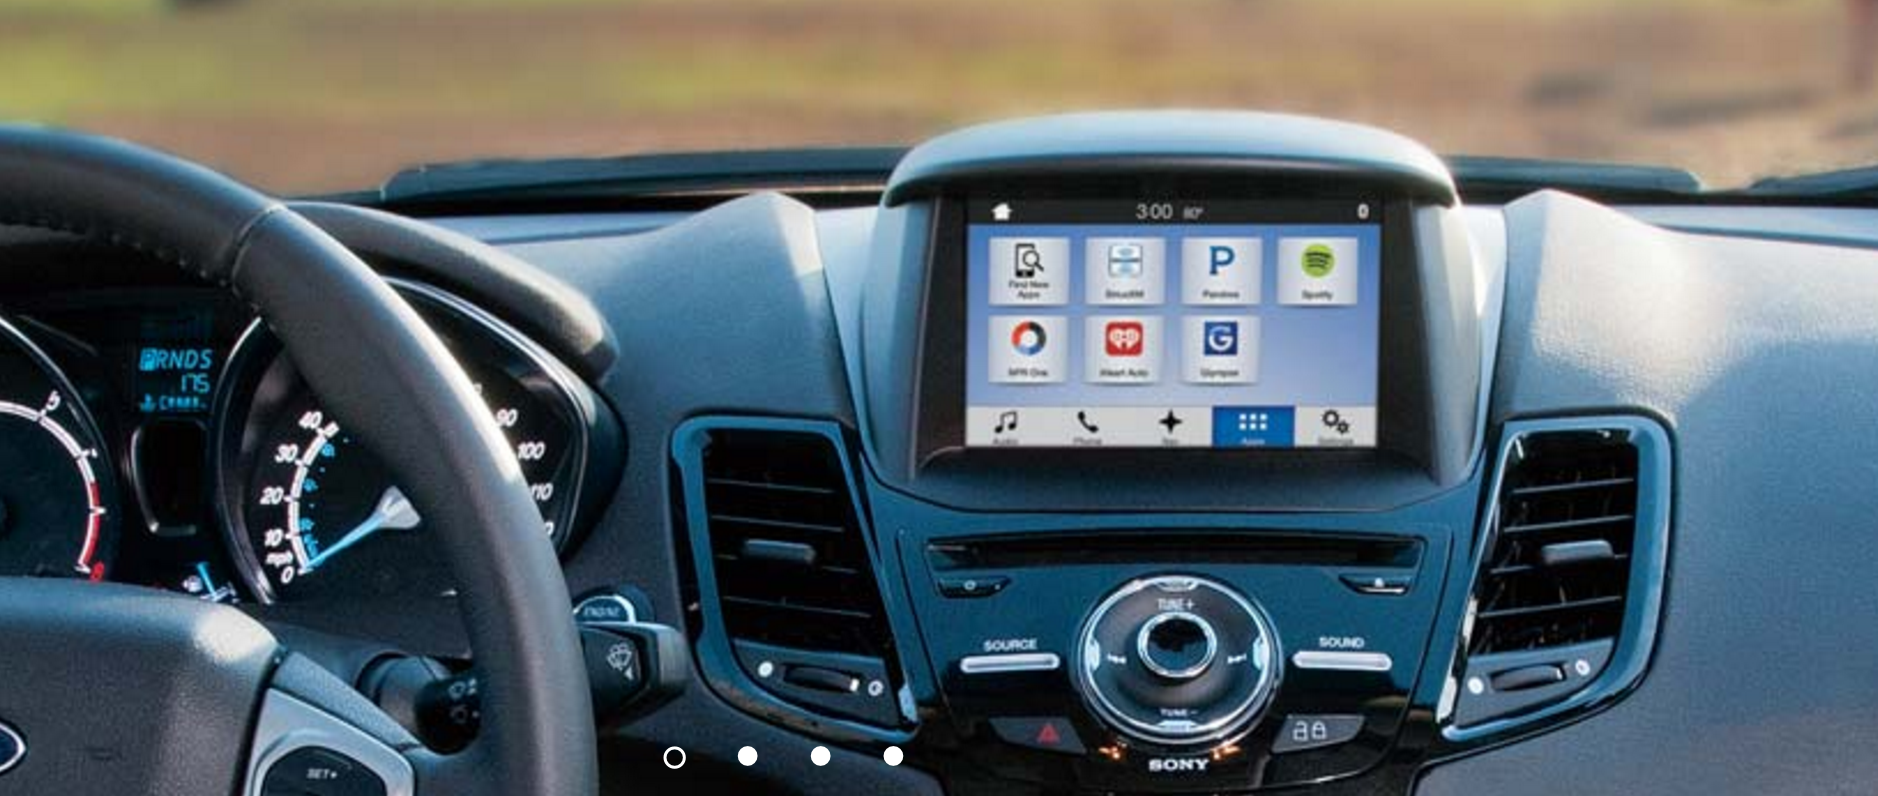 Ford Sync.png